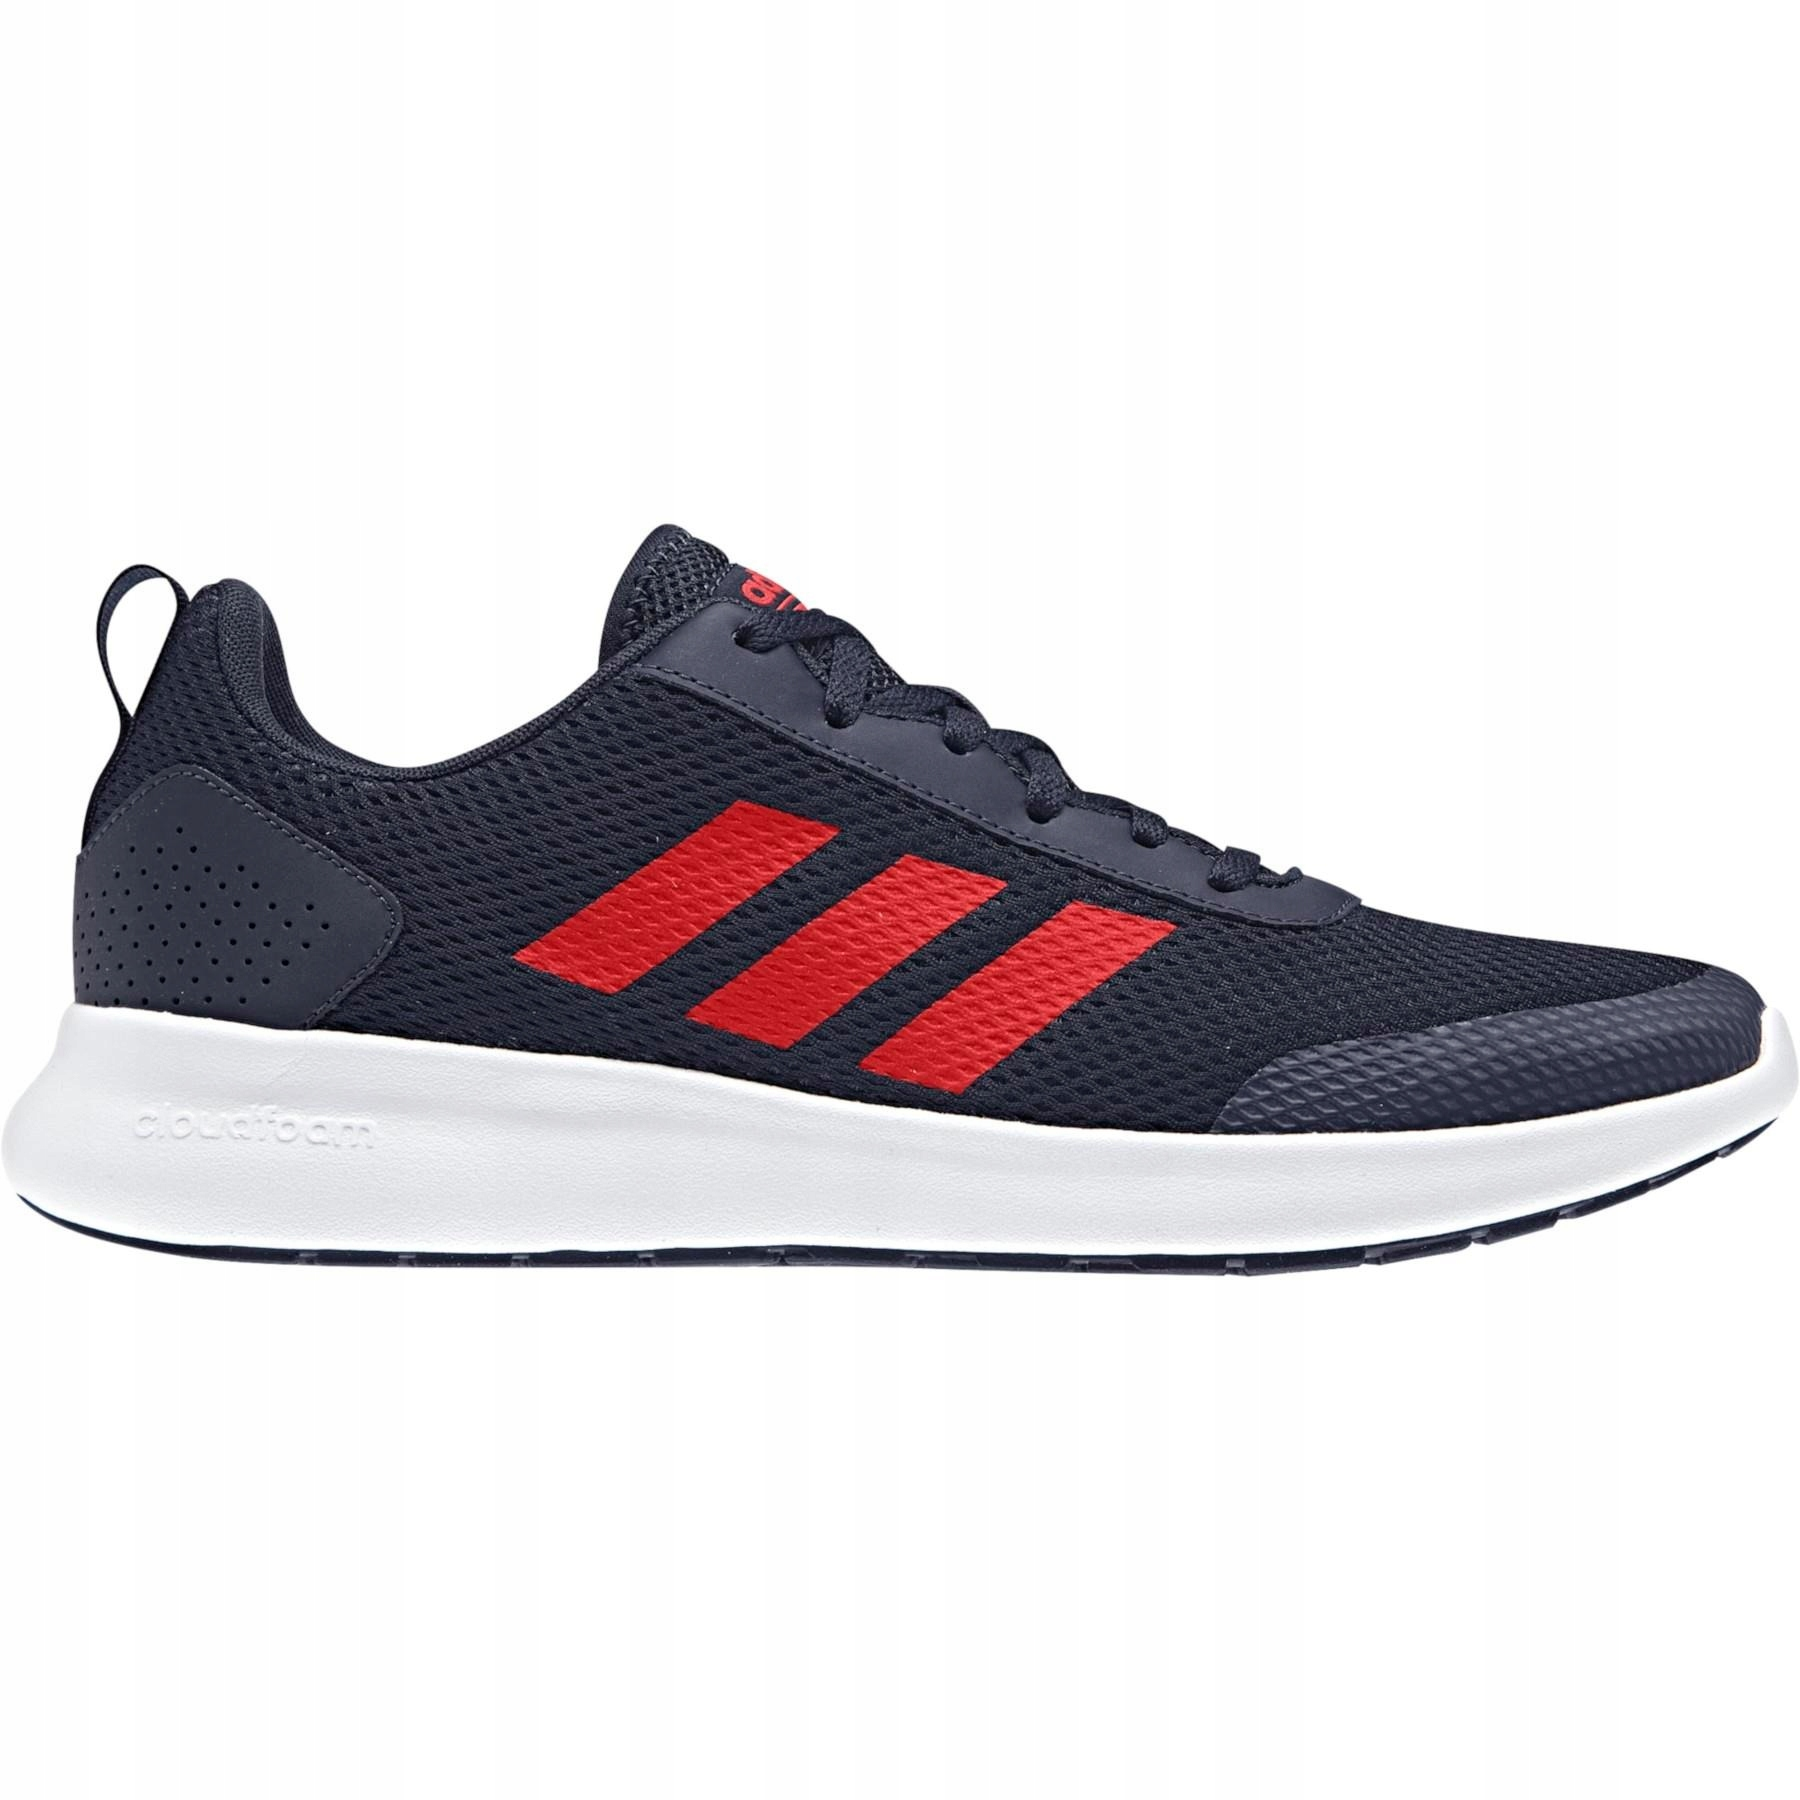 Buty adidas Element Race F34844 F34844-a1 r 46 2/3